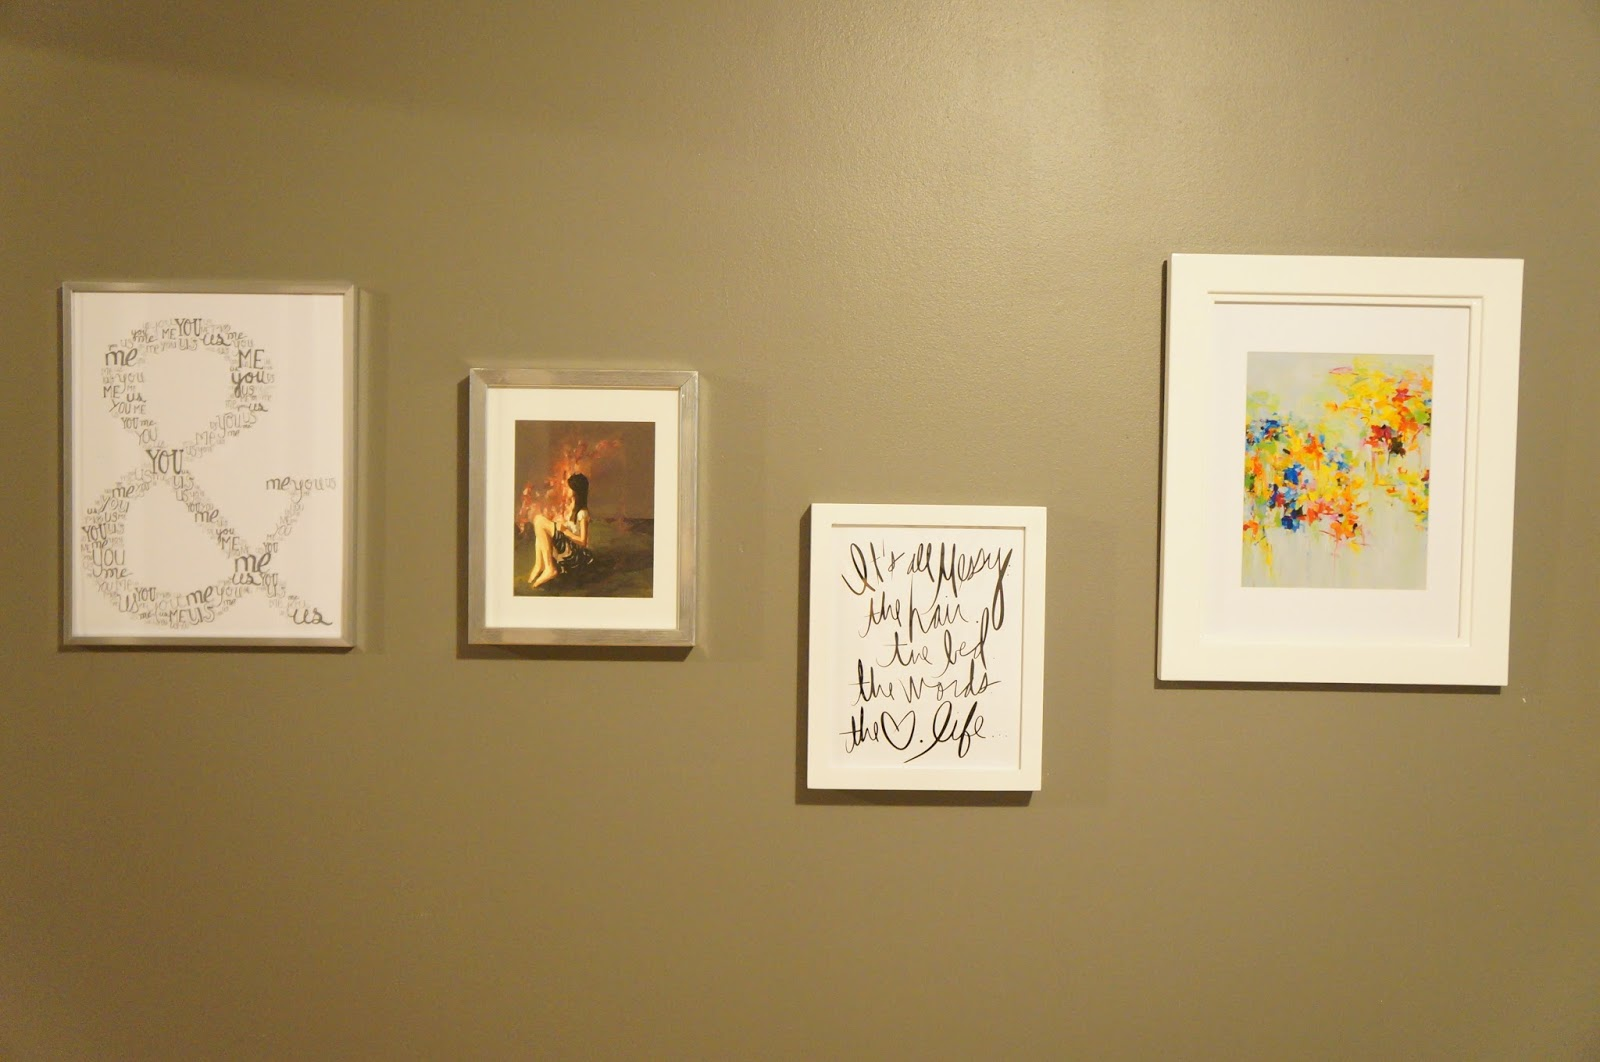 Another Gallery Wall Up in Here